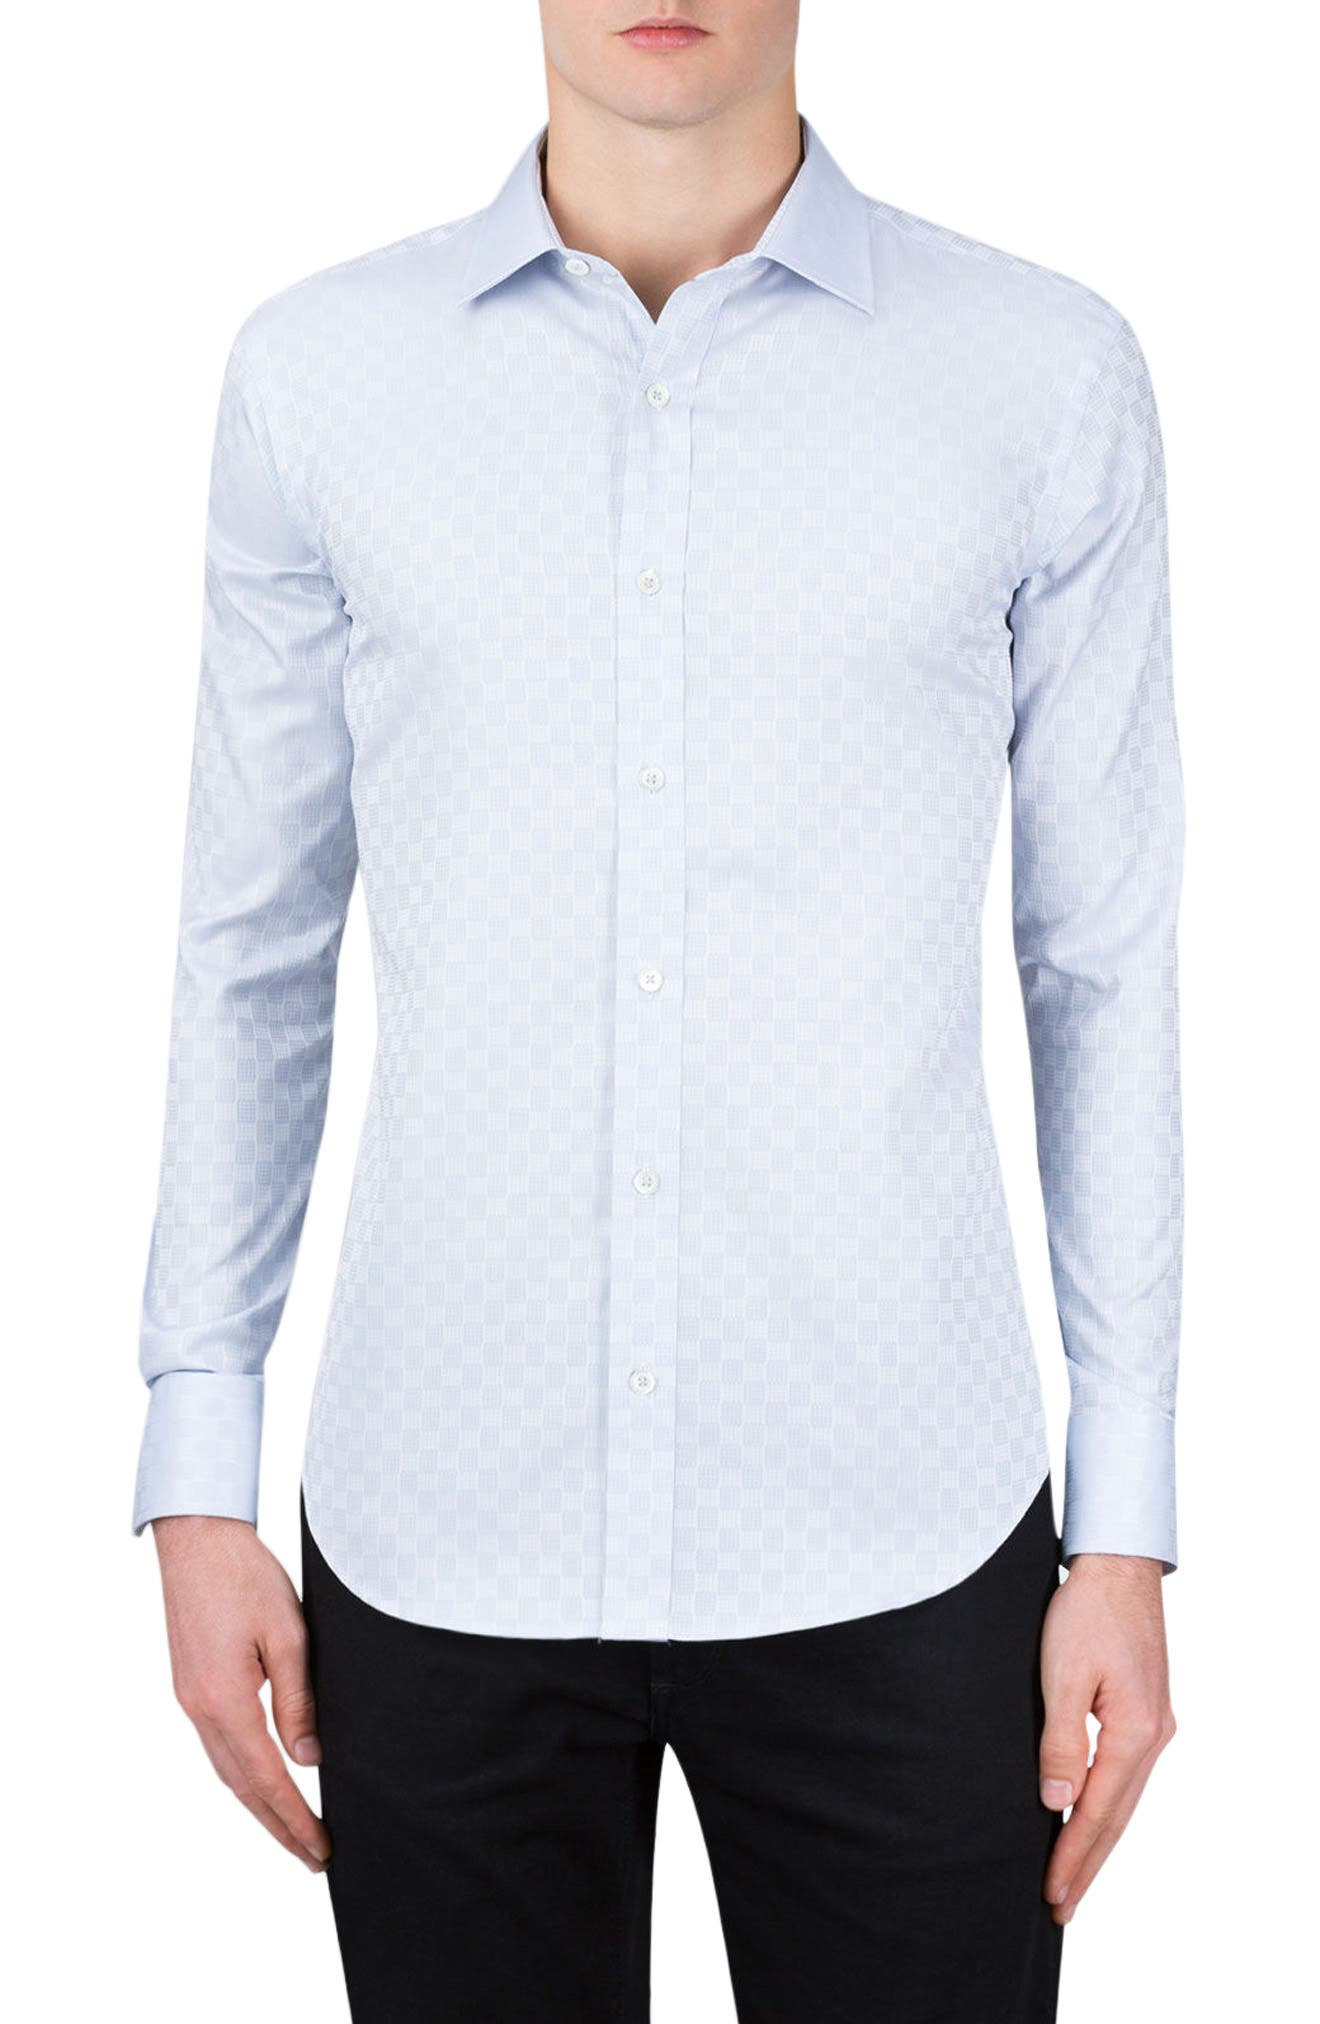 Alternate Image 1 Selected - Bugatchi Shaped Fit Checker Print Sport Shirt